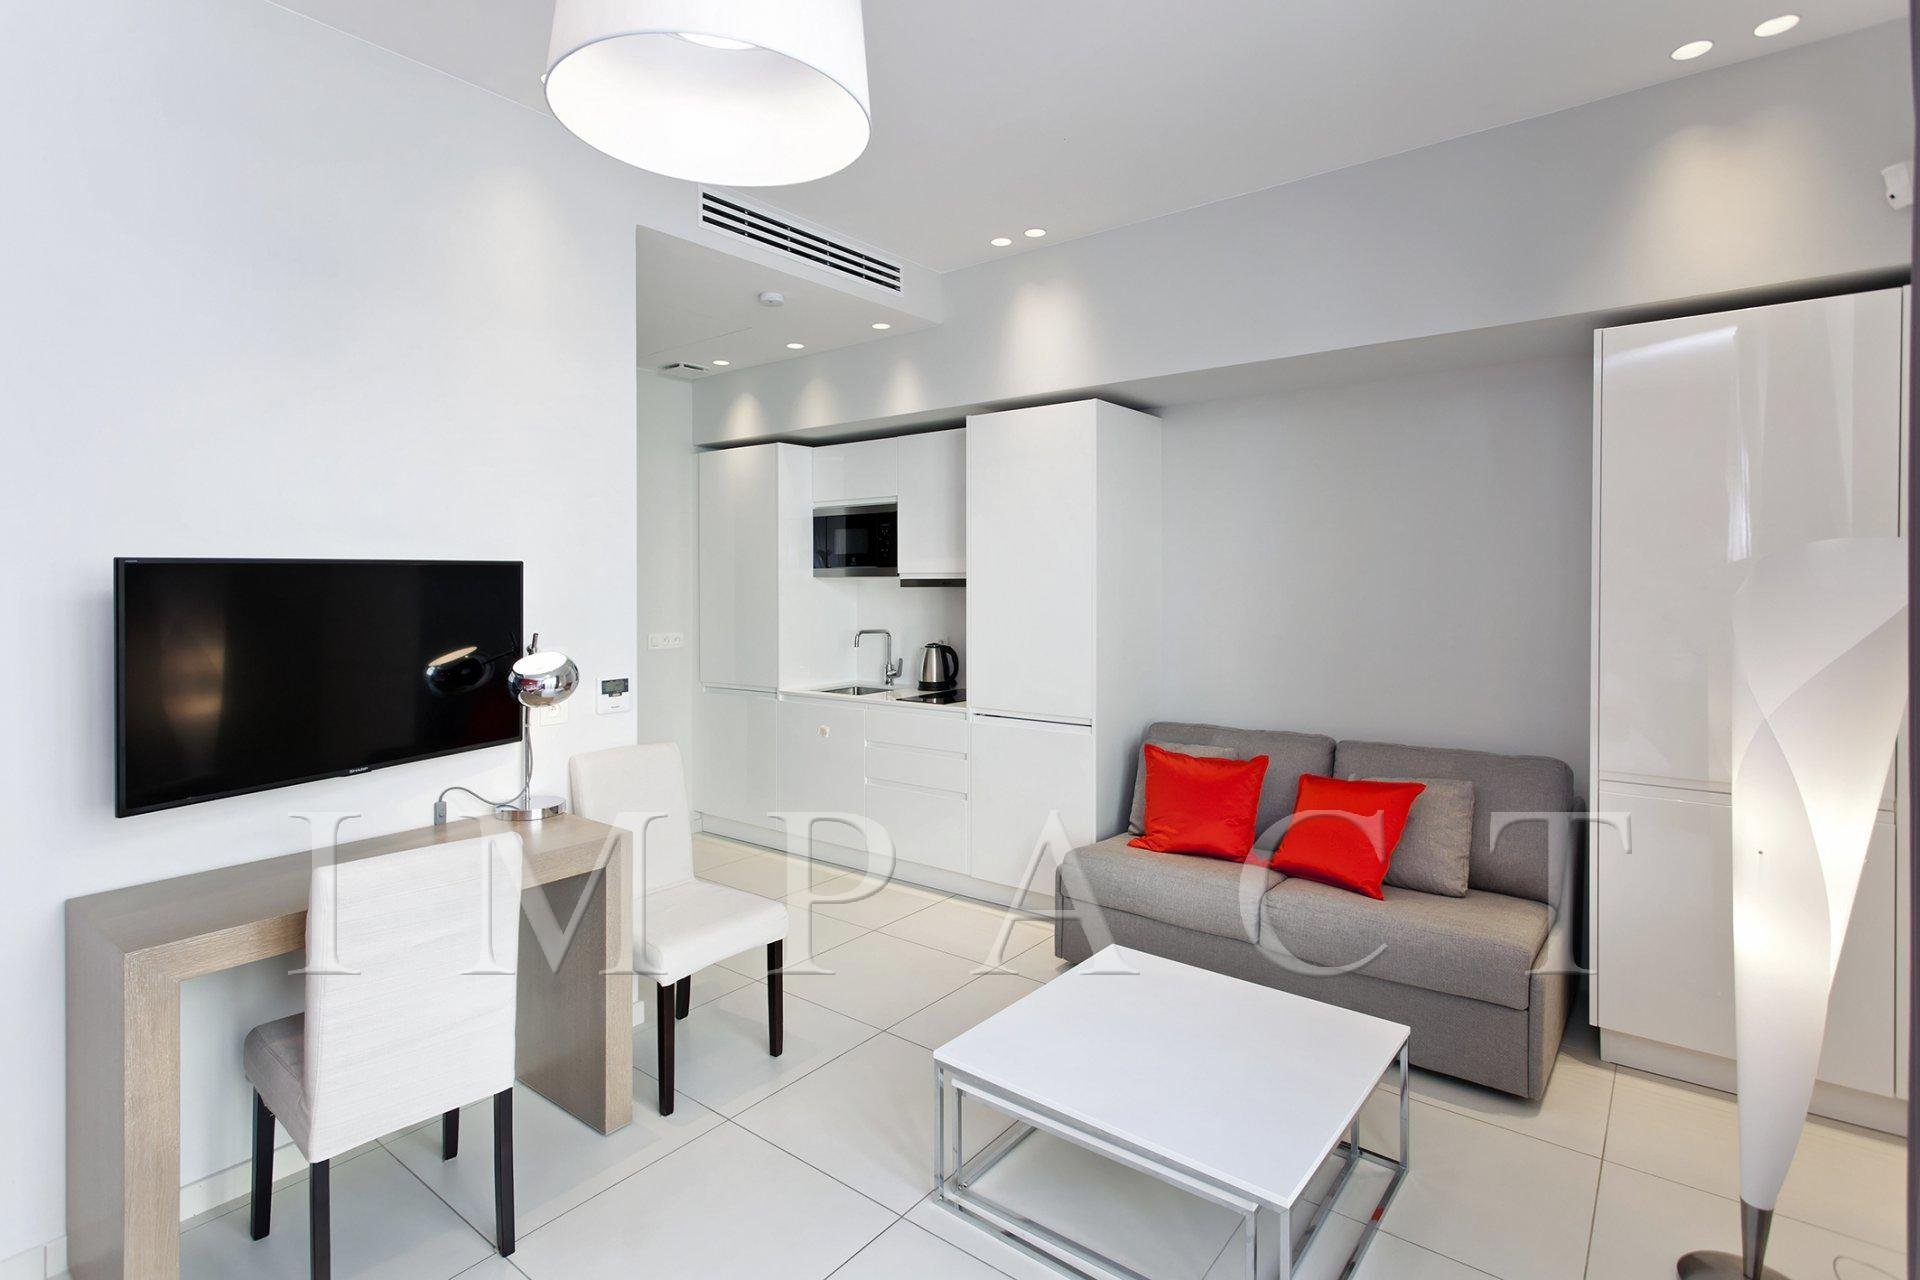 Studio for seasonal rental - City centre of Cannes